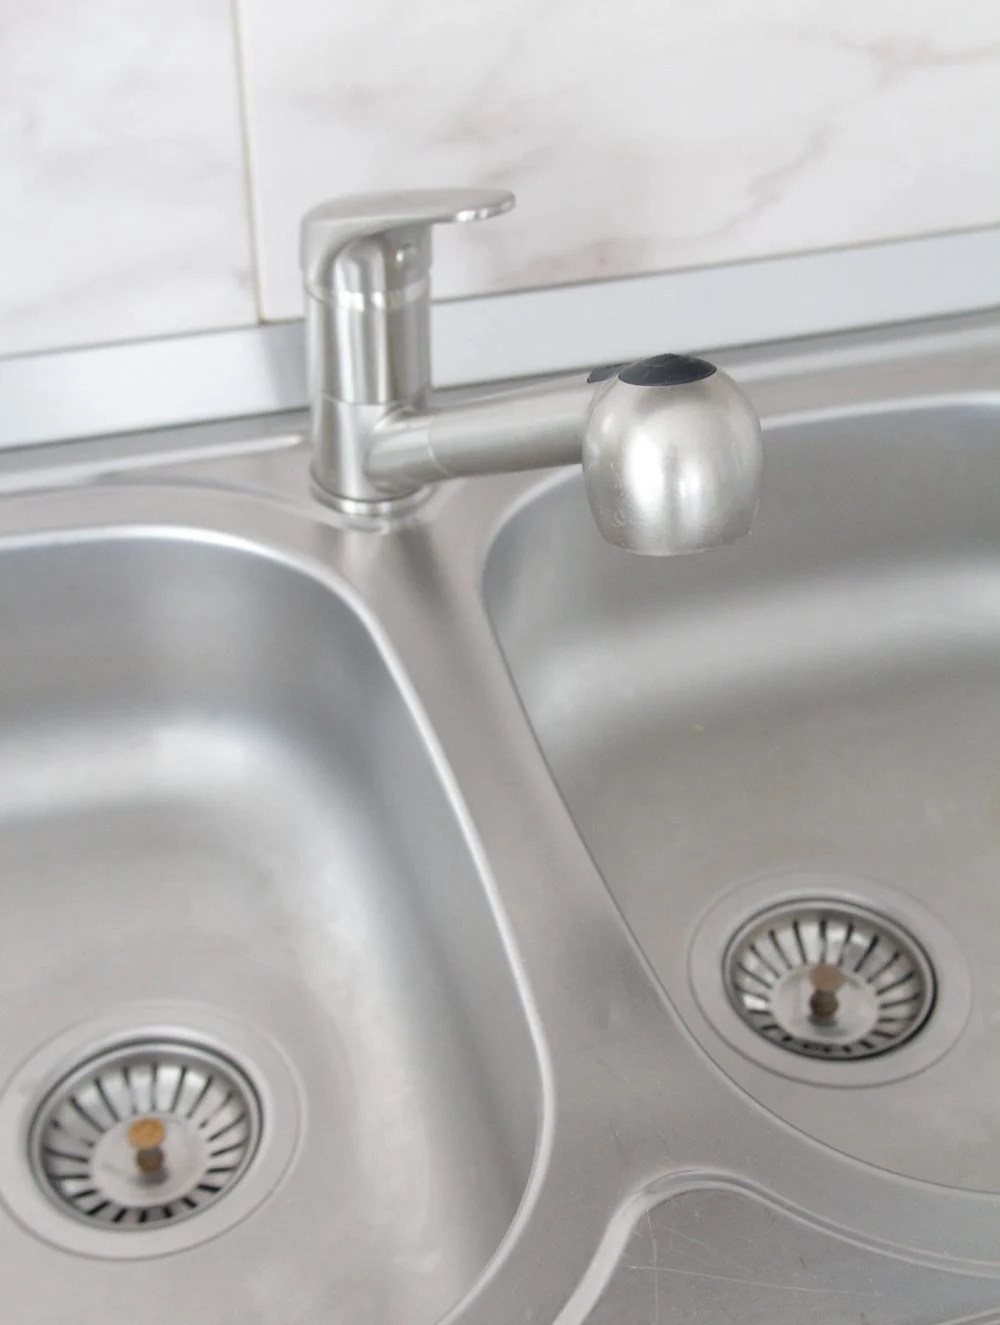 Best cleaner for stainless steel sink